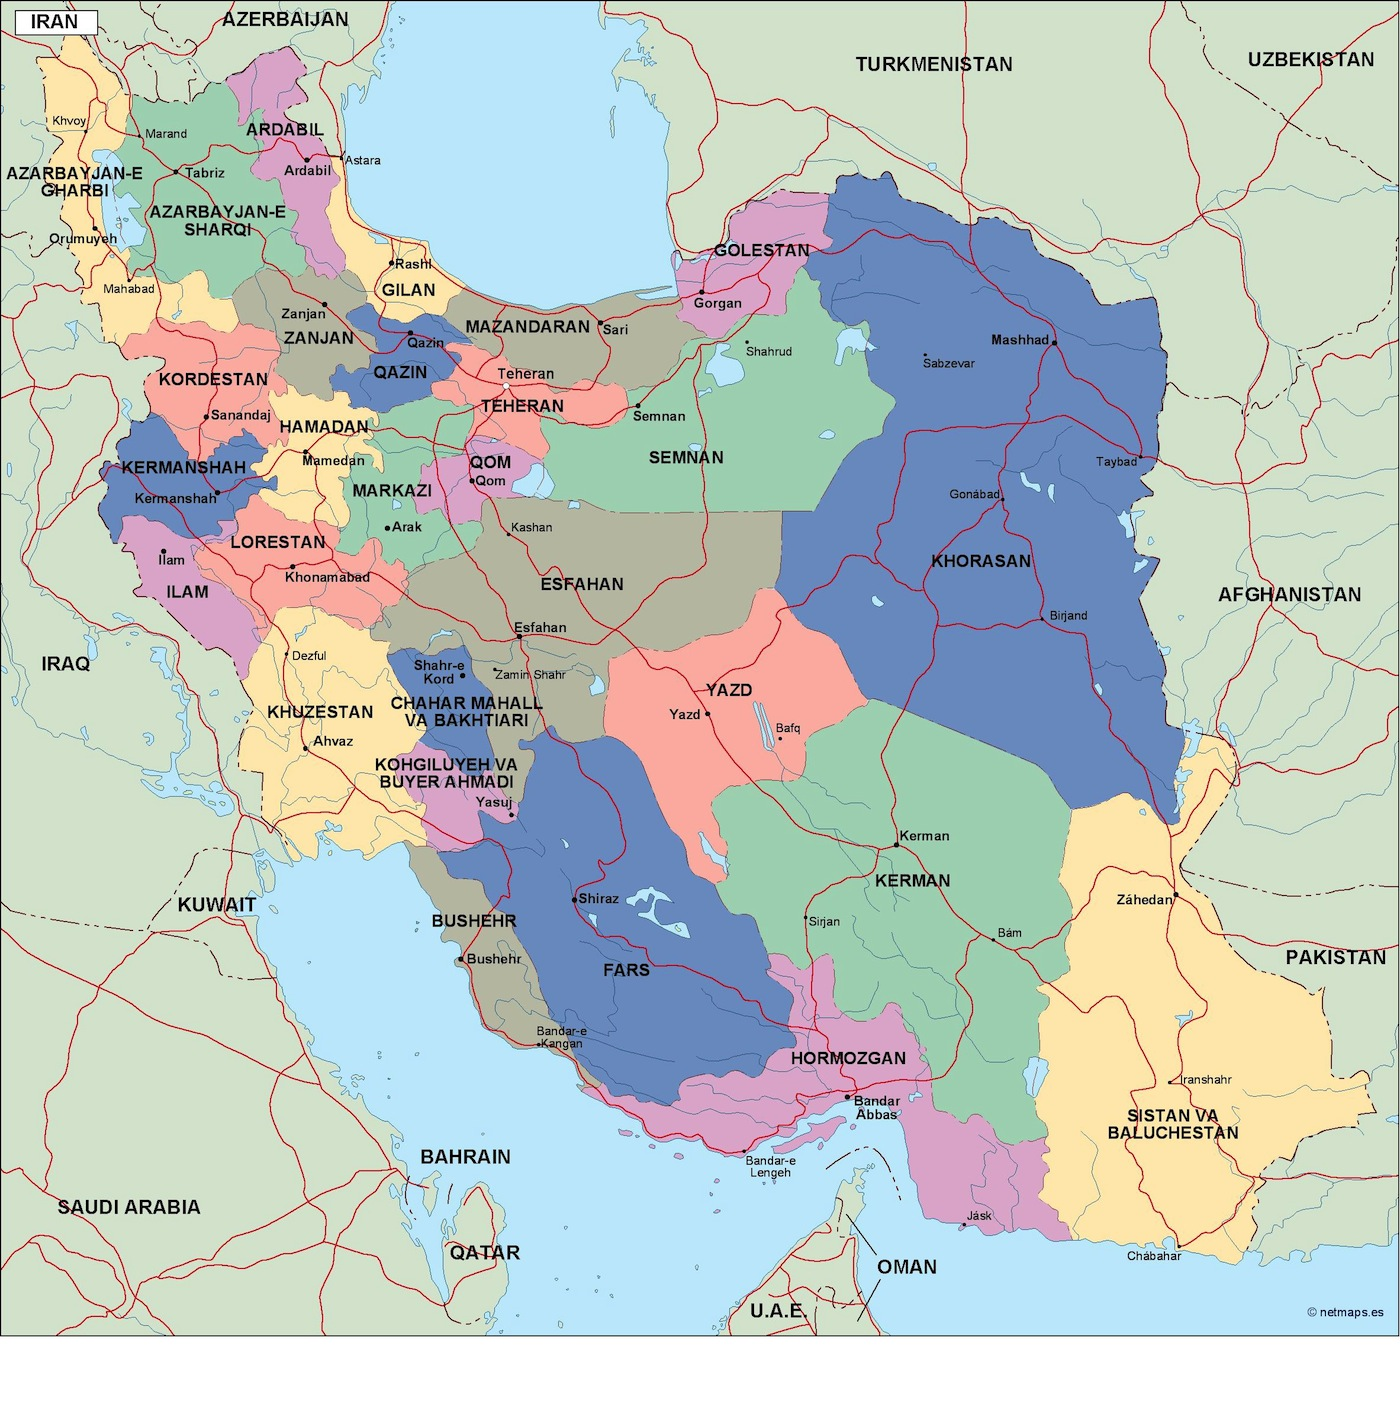 iran political map eps illustrator map a vector eps maps designed by our cartographers named iran political map eps illustrator map